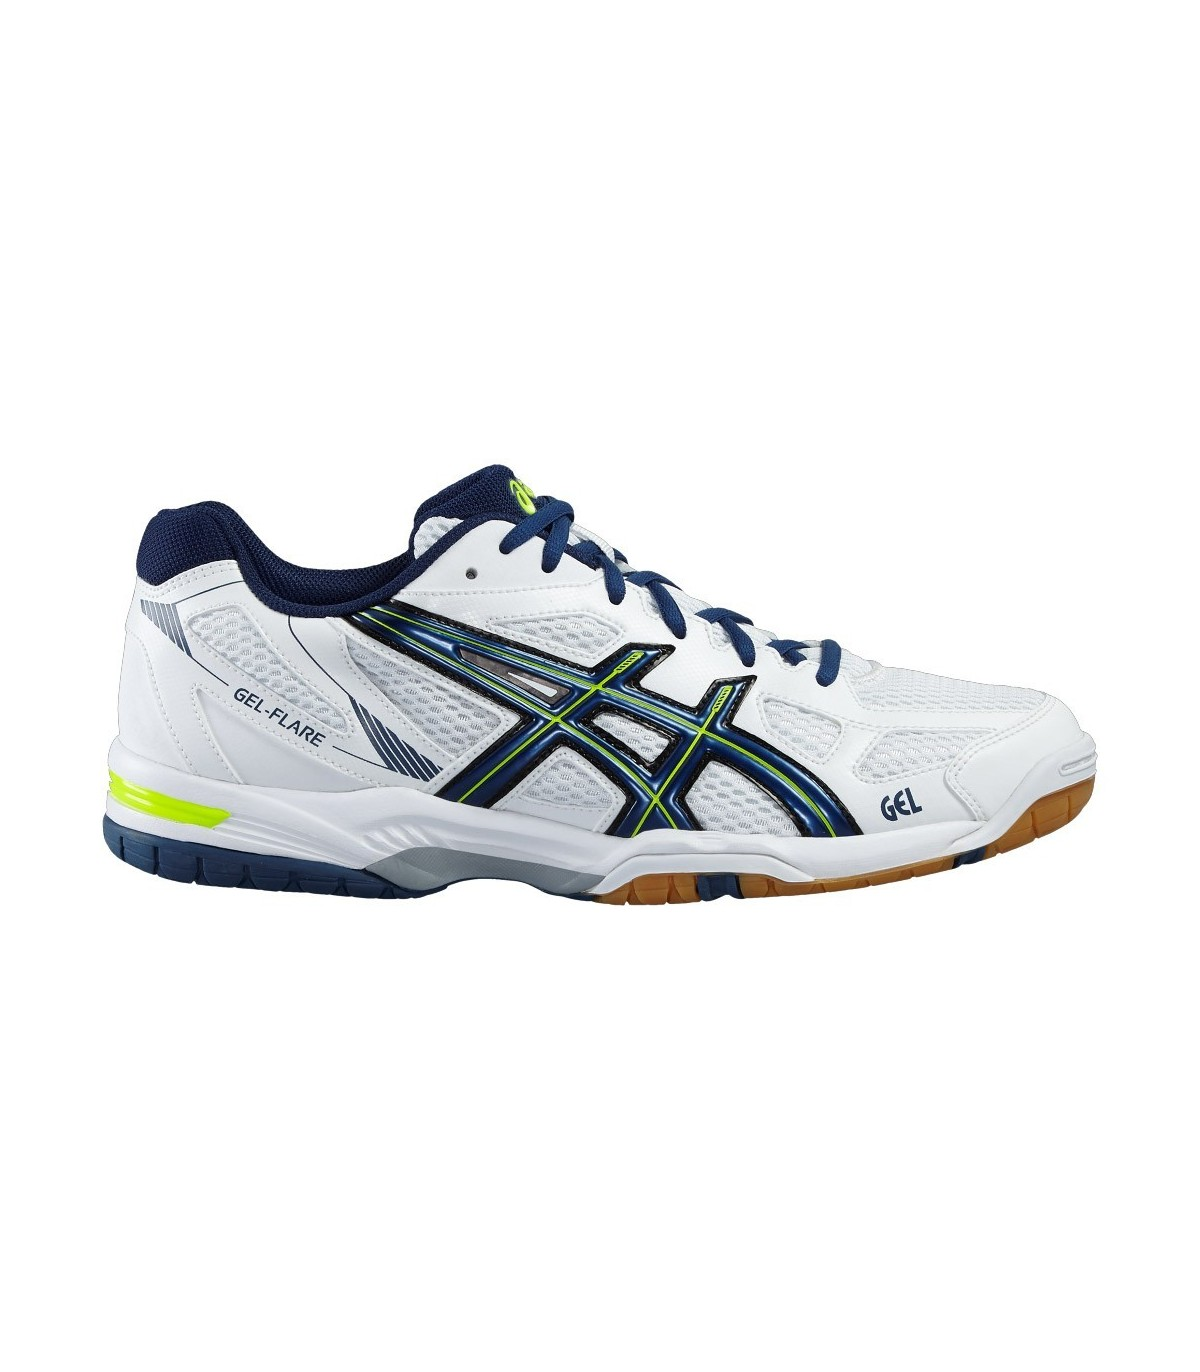 5 Flare Homme Squash Pour Gel Blancbleu Asics Chaussure My yxwYX6aa